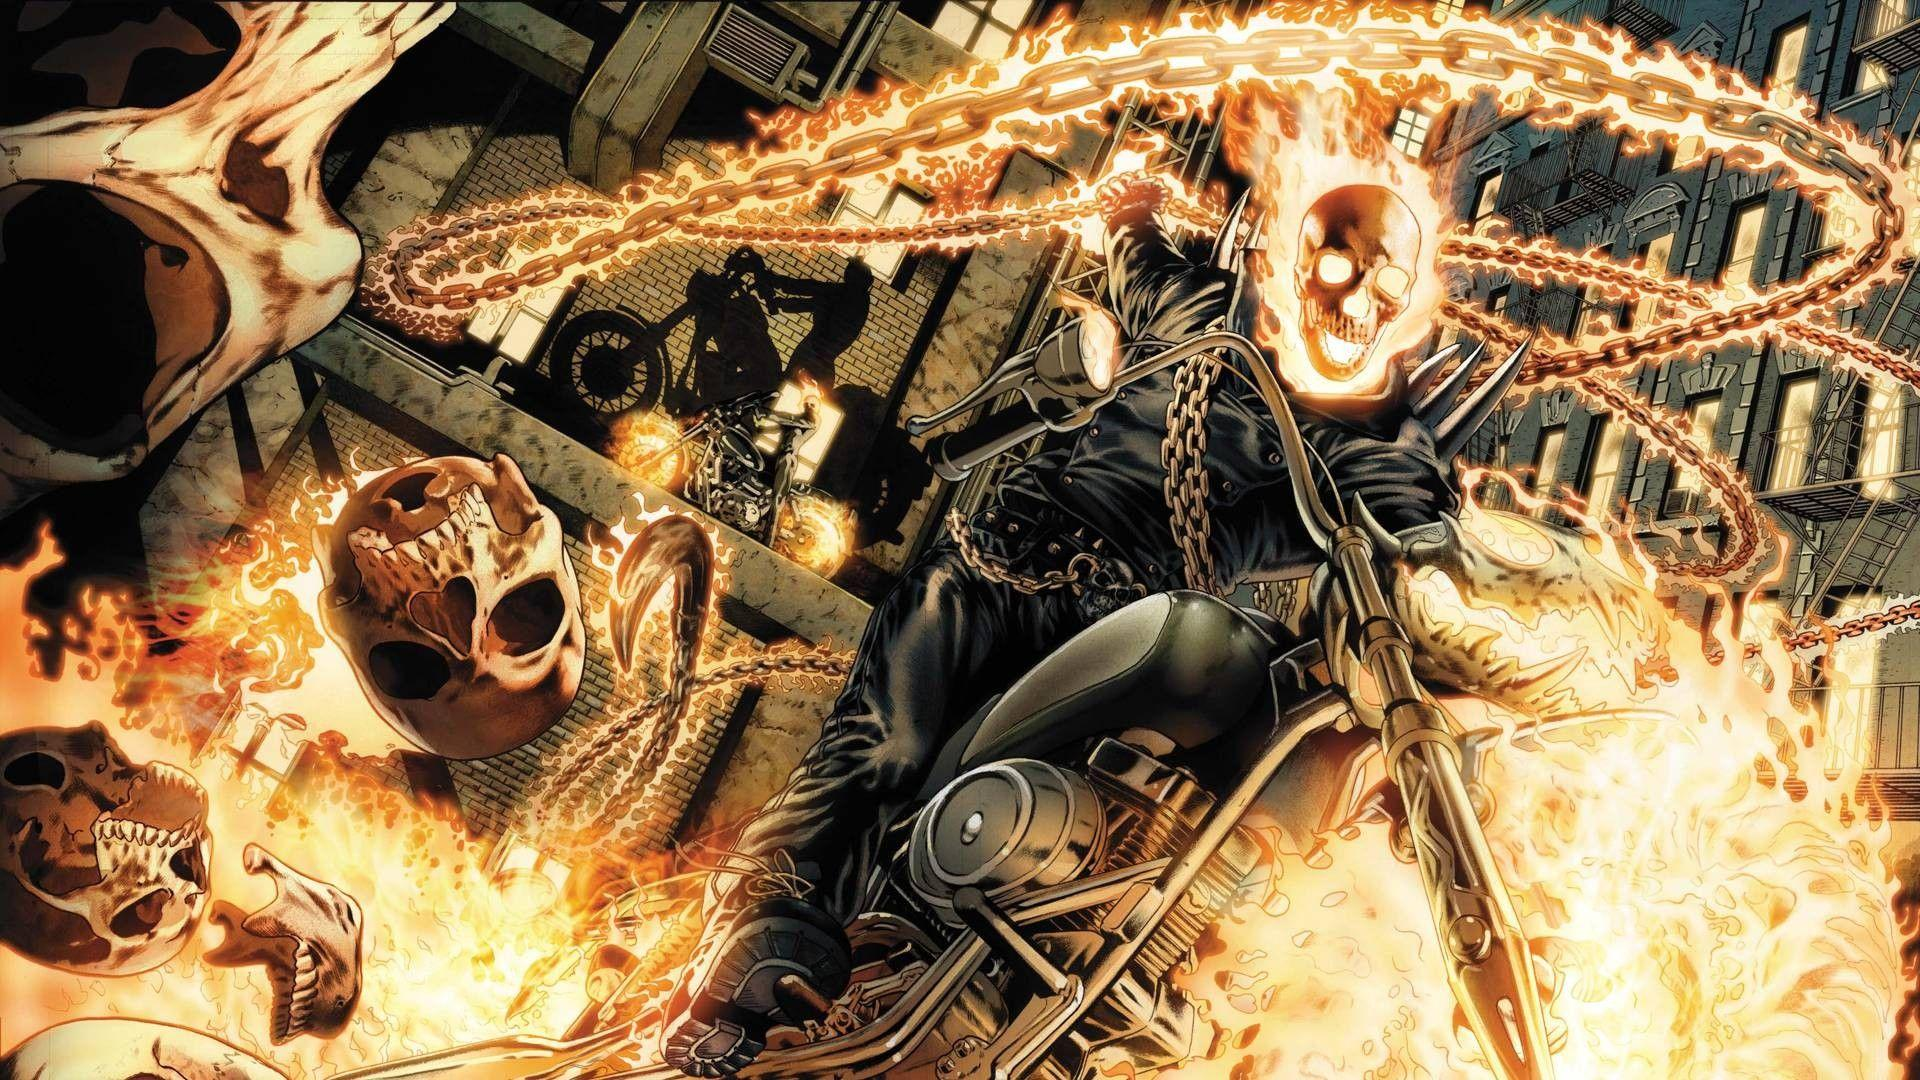 Ghost Rider wallpapers ·① Download free awesome HD backgrounds for